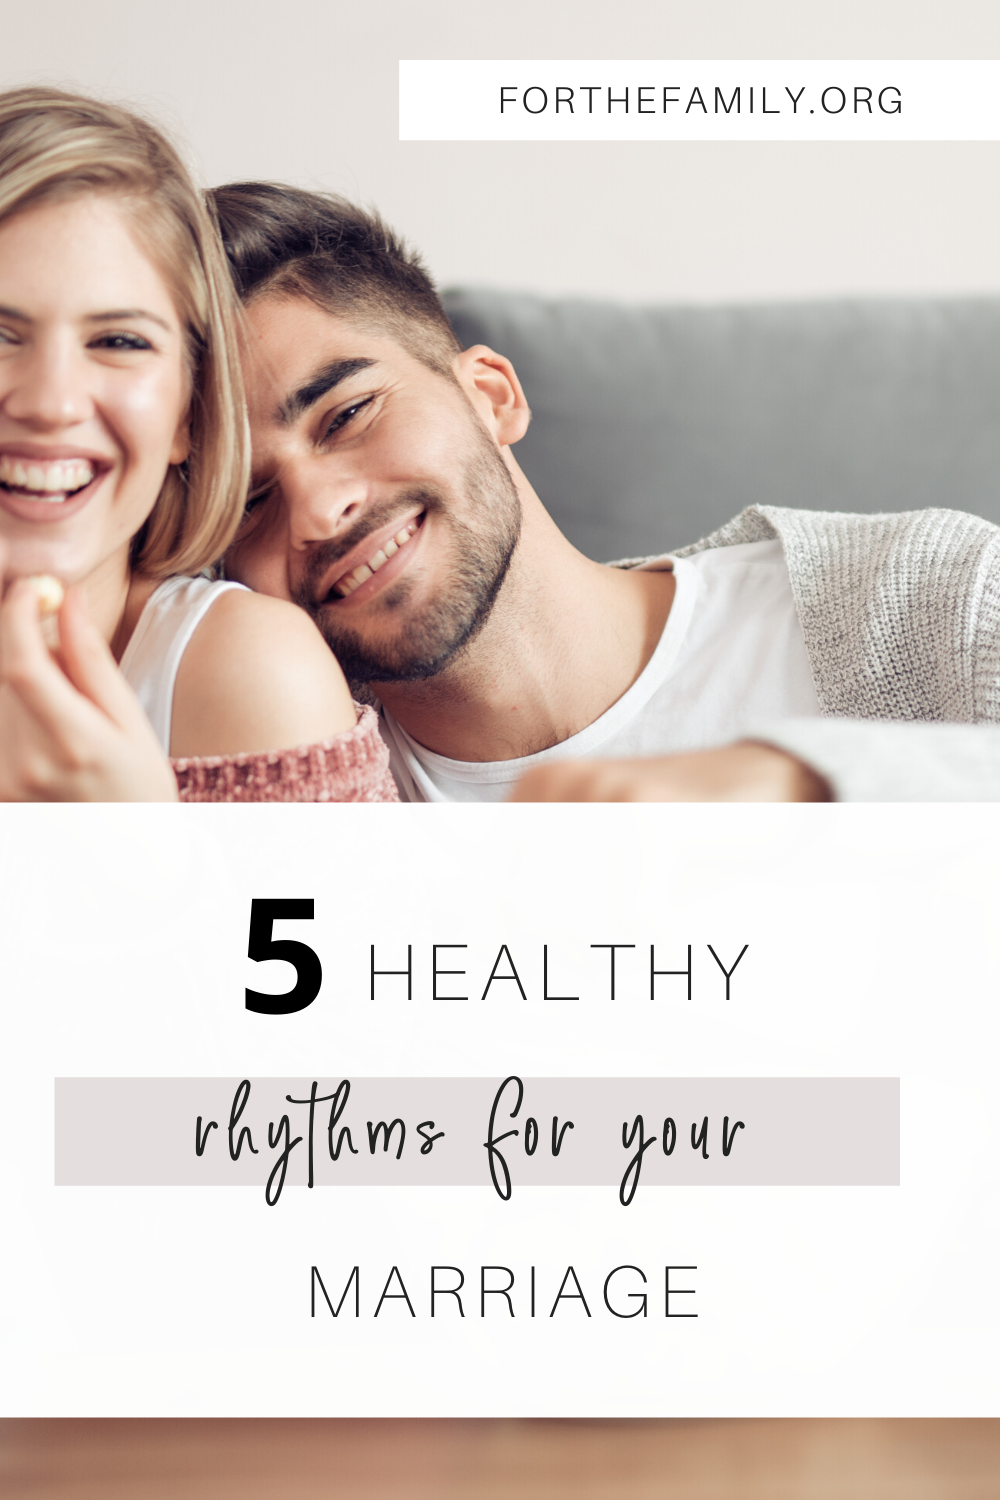 Are you struggling to keep your marriage a priority in the midst of work, school, and life? Is it even possible? This is the perfect time of year to start establishing healthy rhythms for a healthy marriage. We are sharing five of those rhythms today!